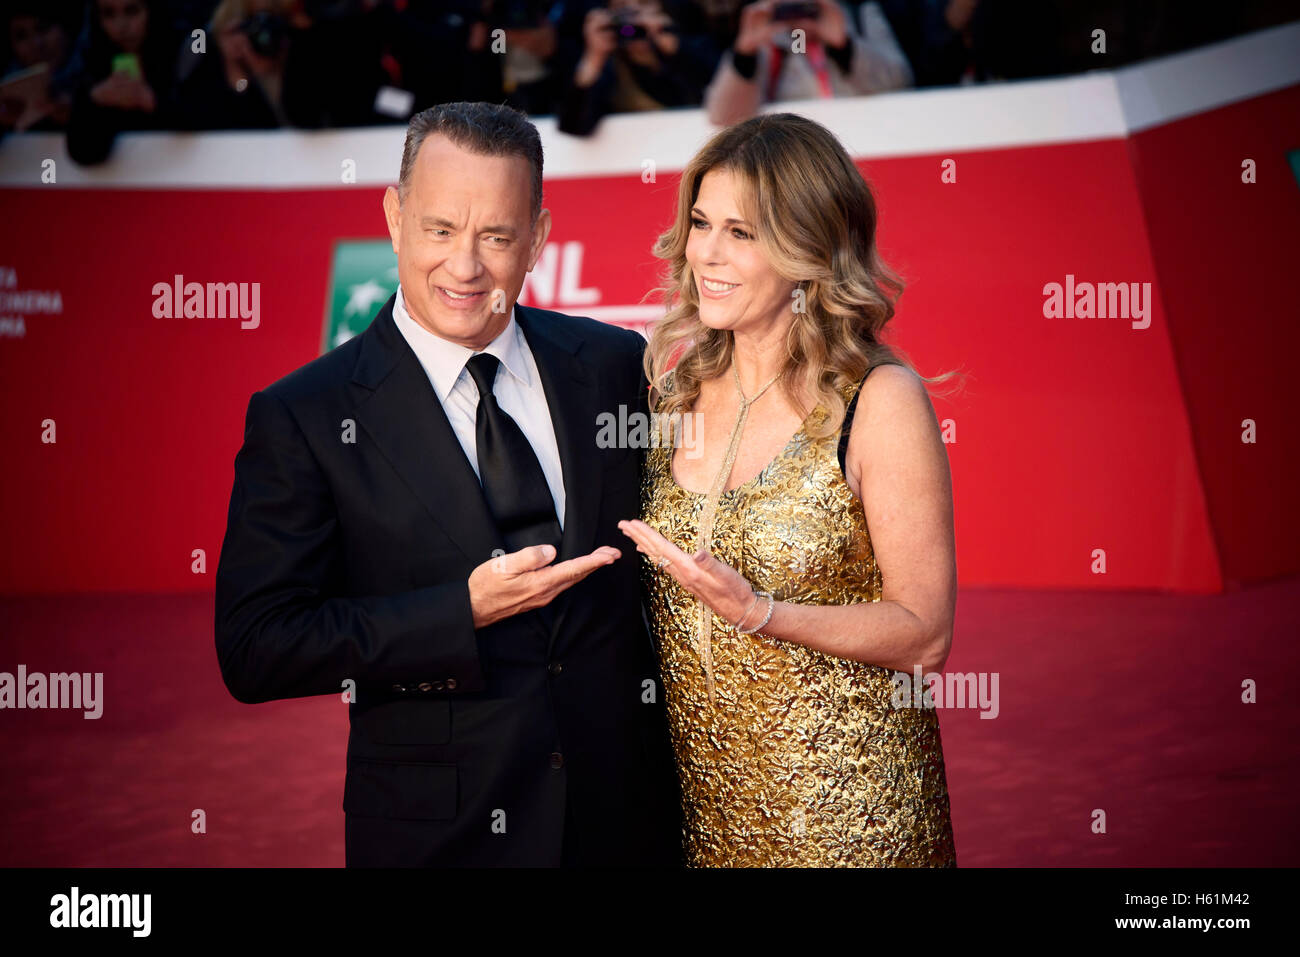 Tom Hanks and Rita Wilson attend the red carpet during the Rome Film Fest 2016 - Stock Image